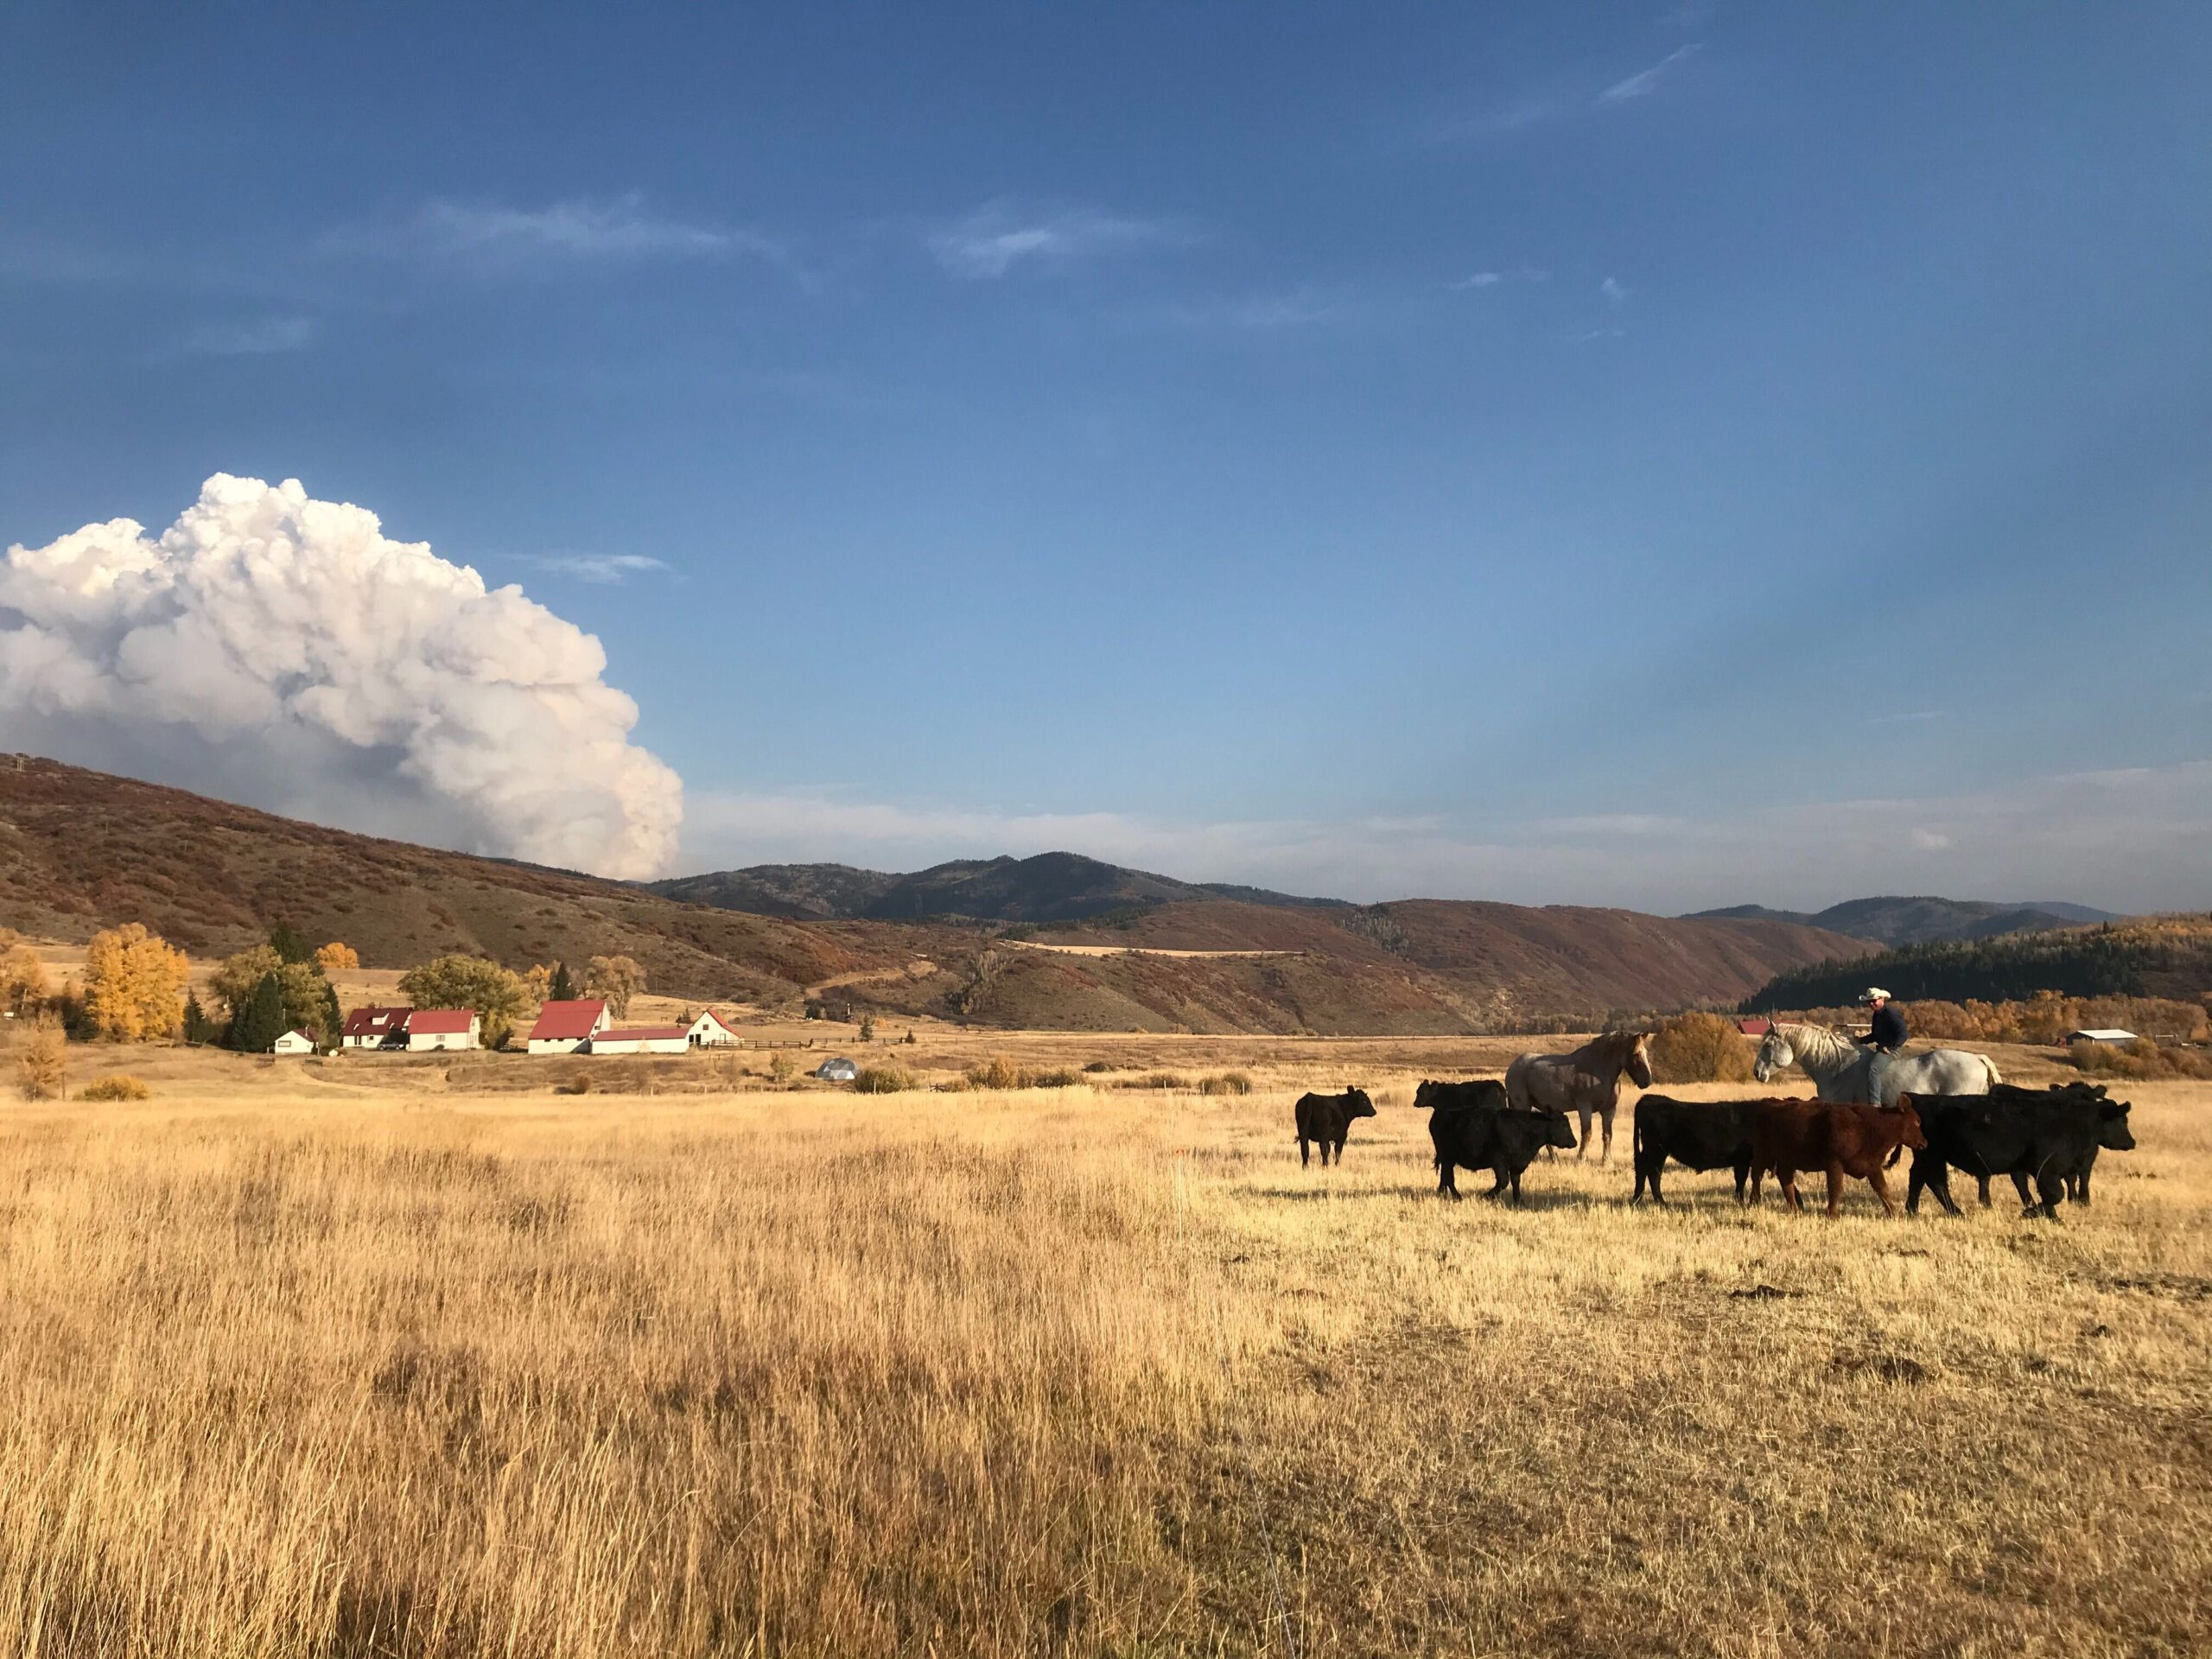 A rancher with his horse and cattle in Routt County, with the Middle Fork fire burning in the background, October 8, 2020.